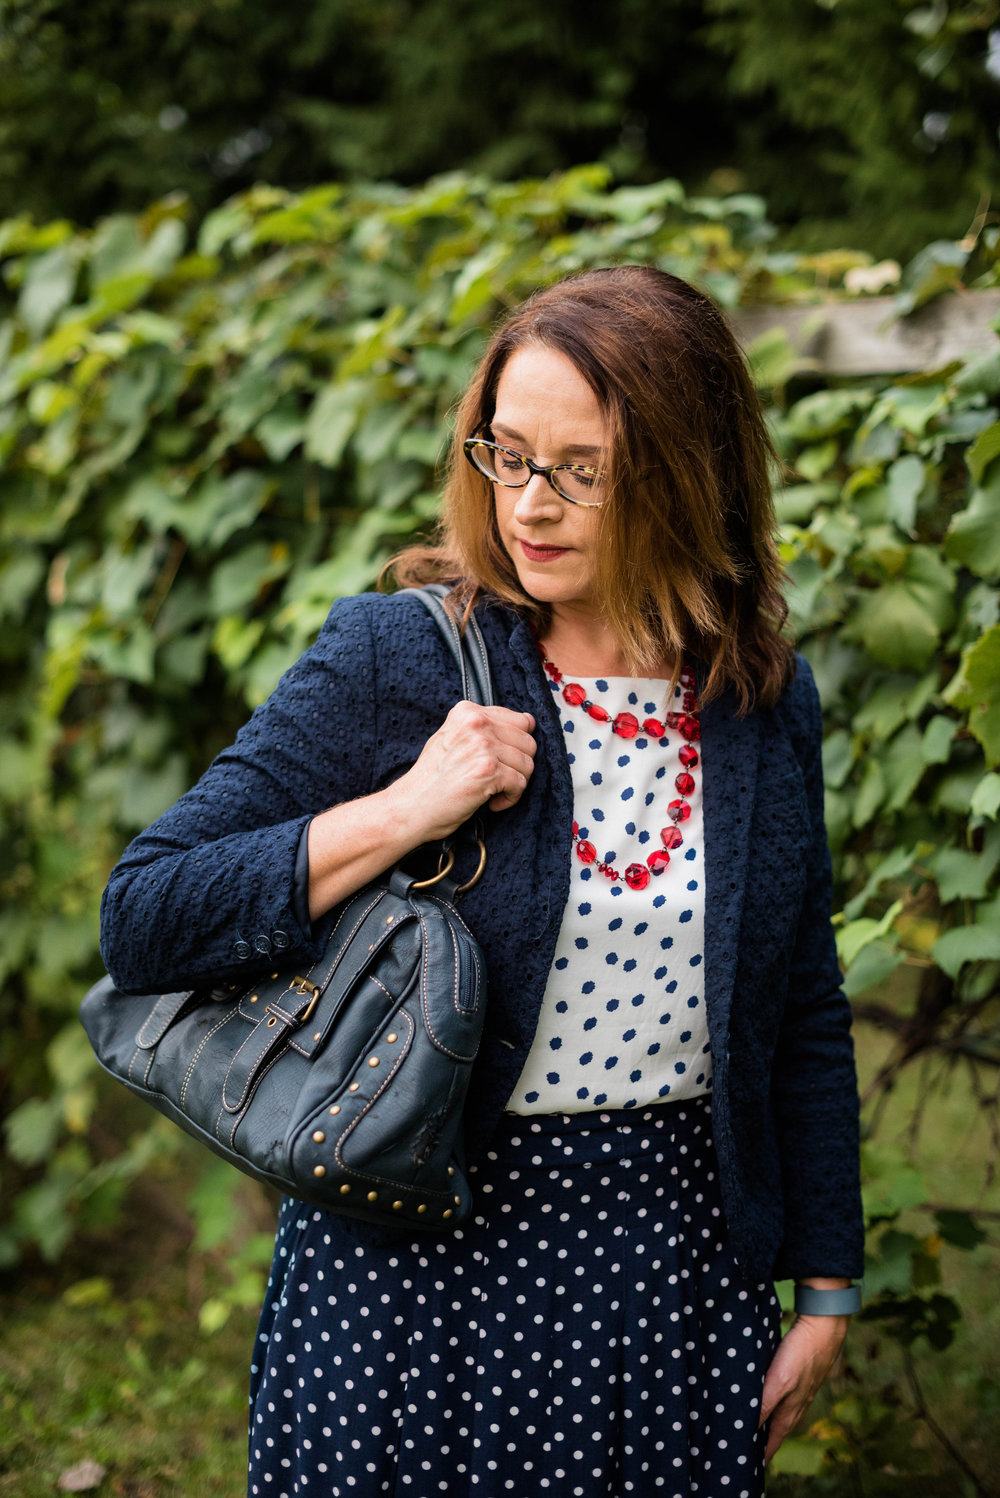 Polkadot navy blue outfit